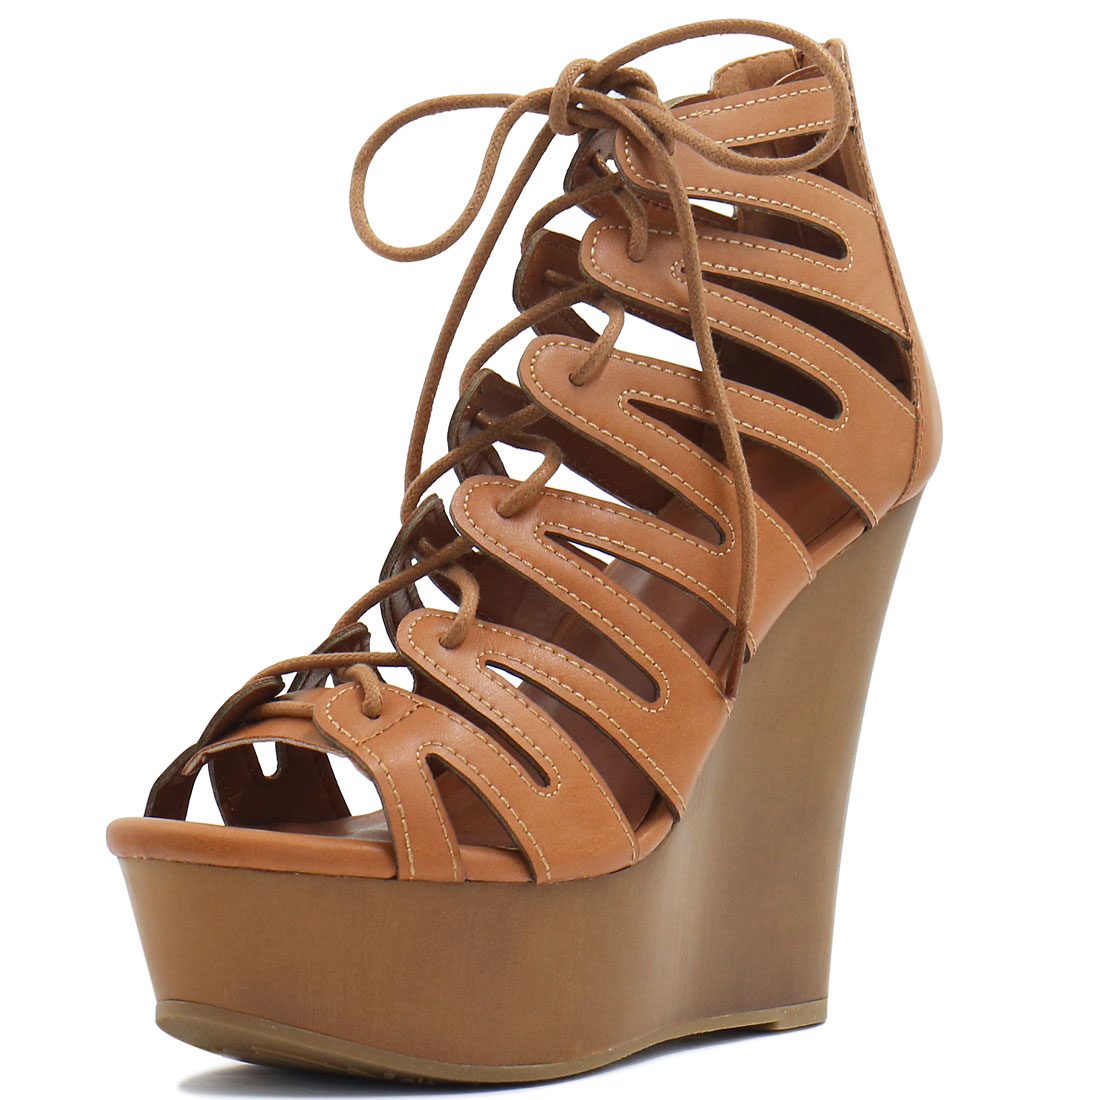 Woman Open Toe Lace-Up Cutout Platform Wedge Sandals Brown US 9